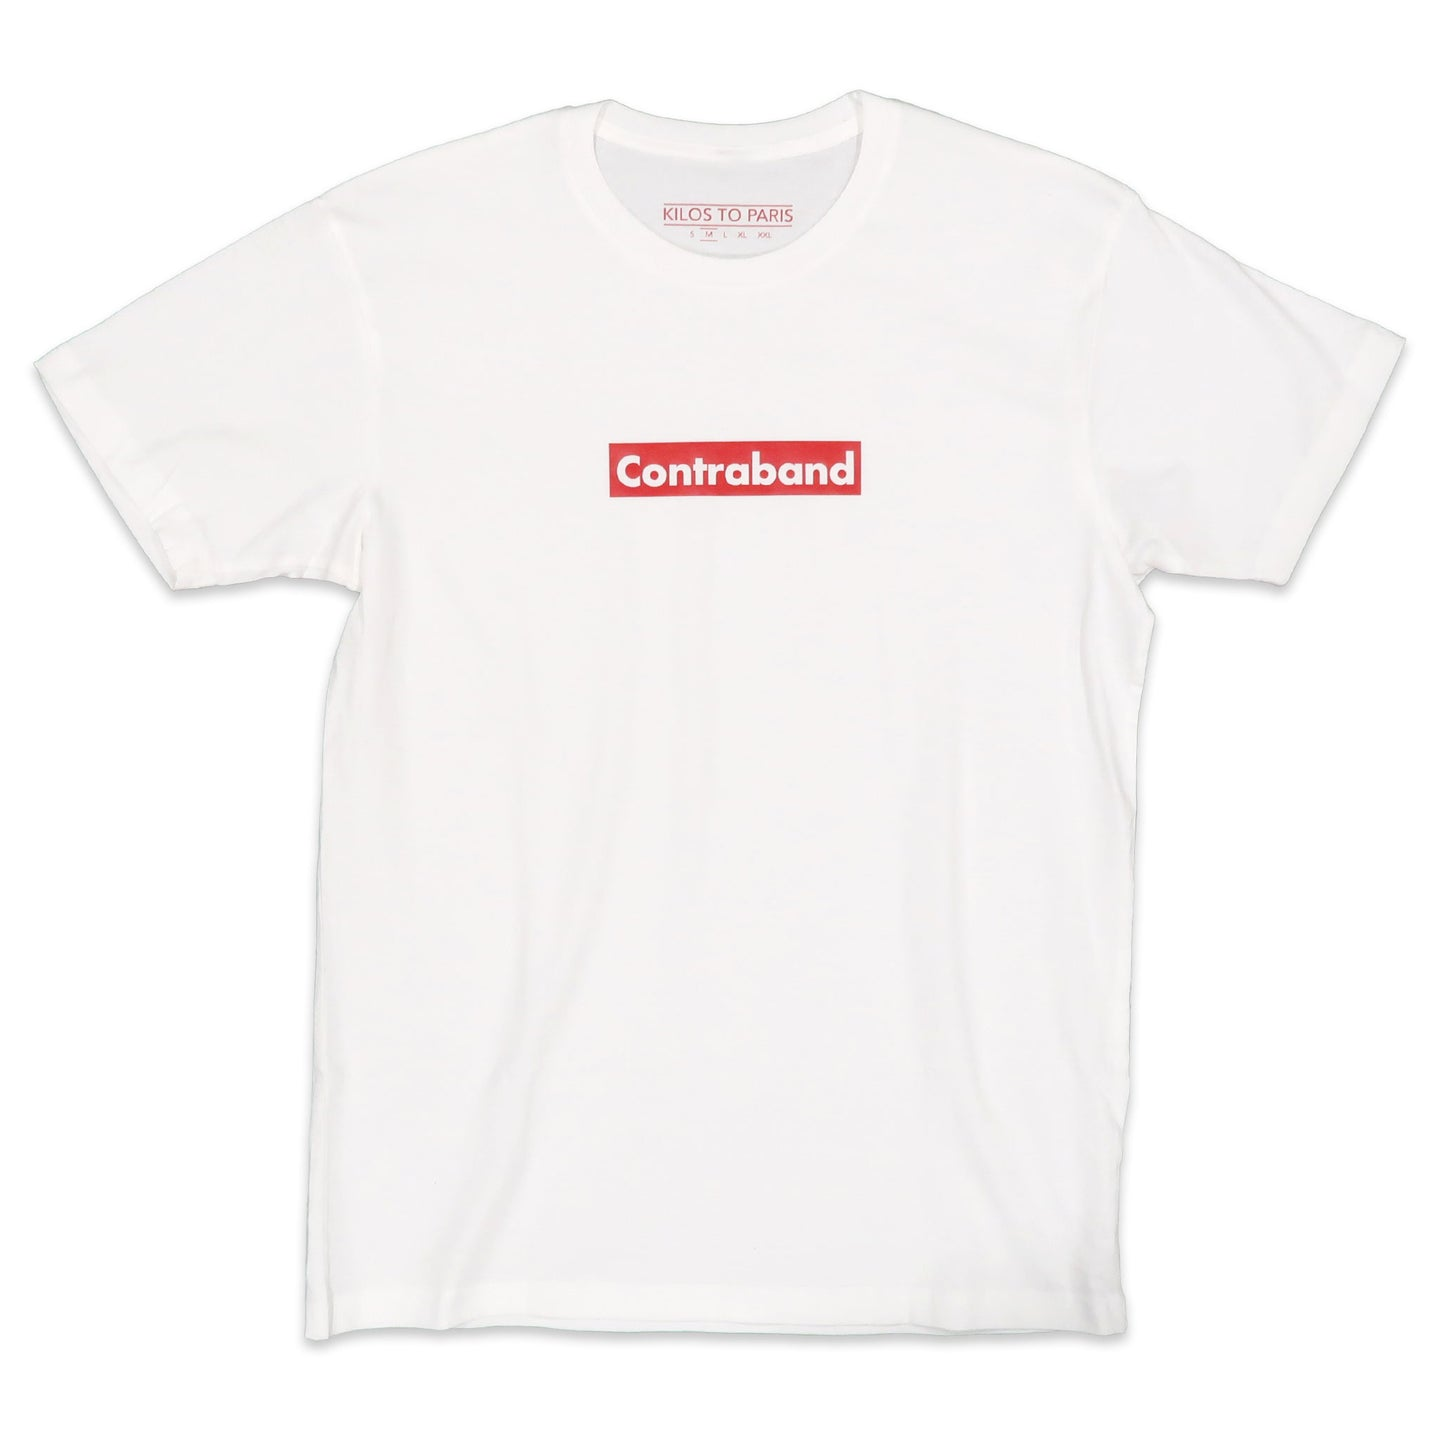 Contraband Block Tee in White and Red